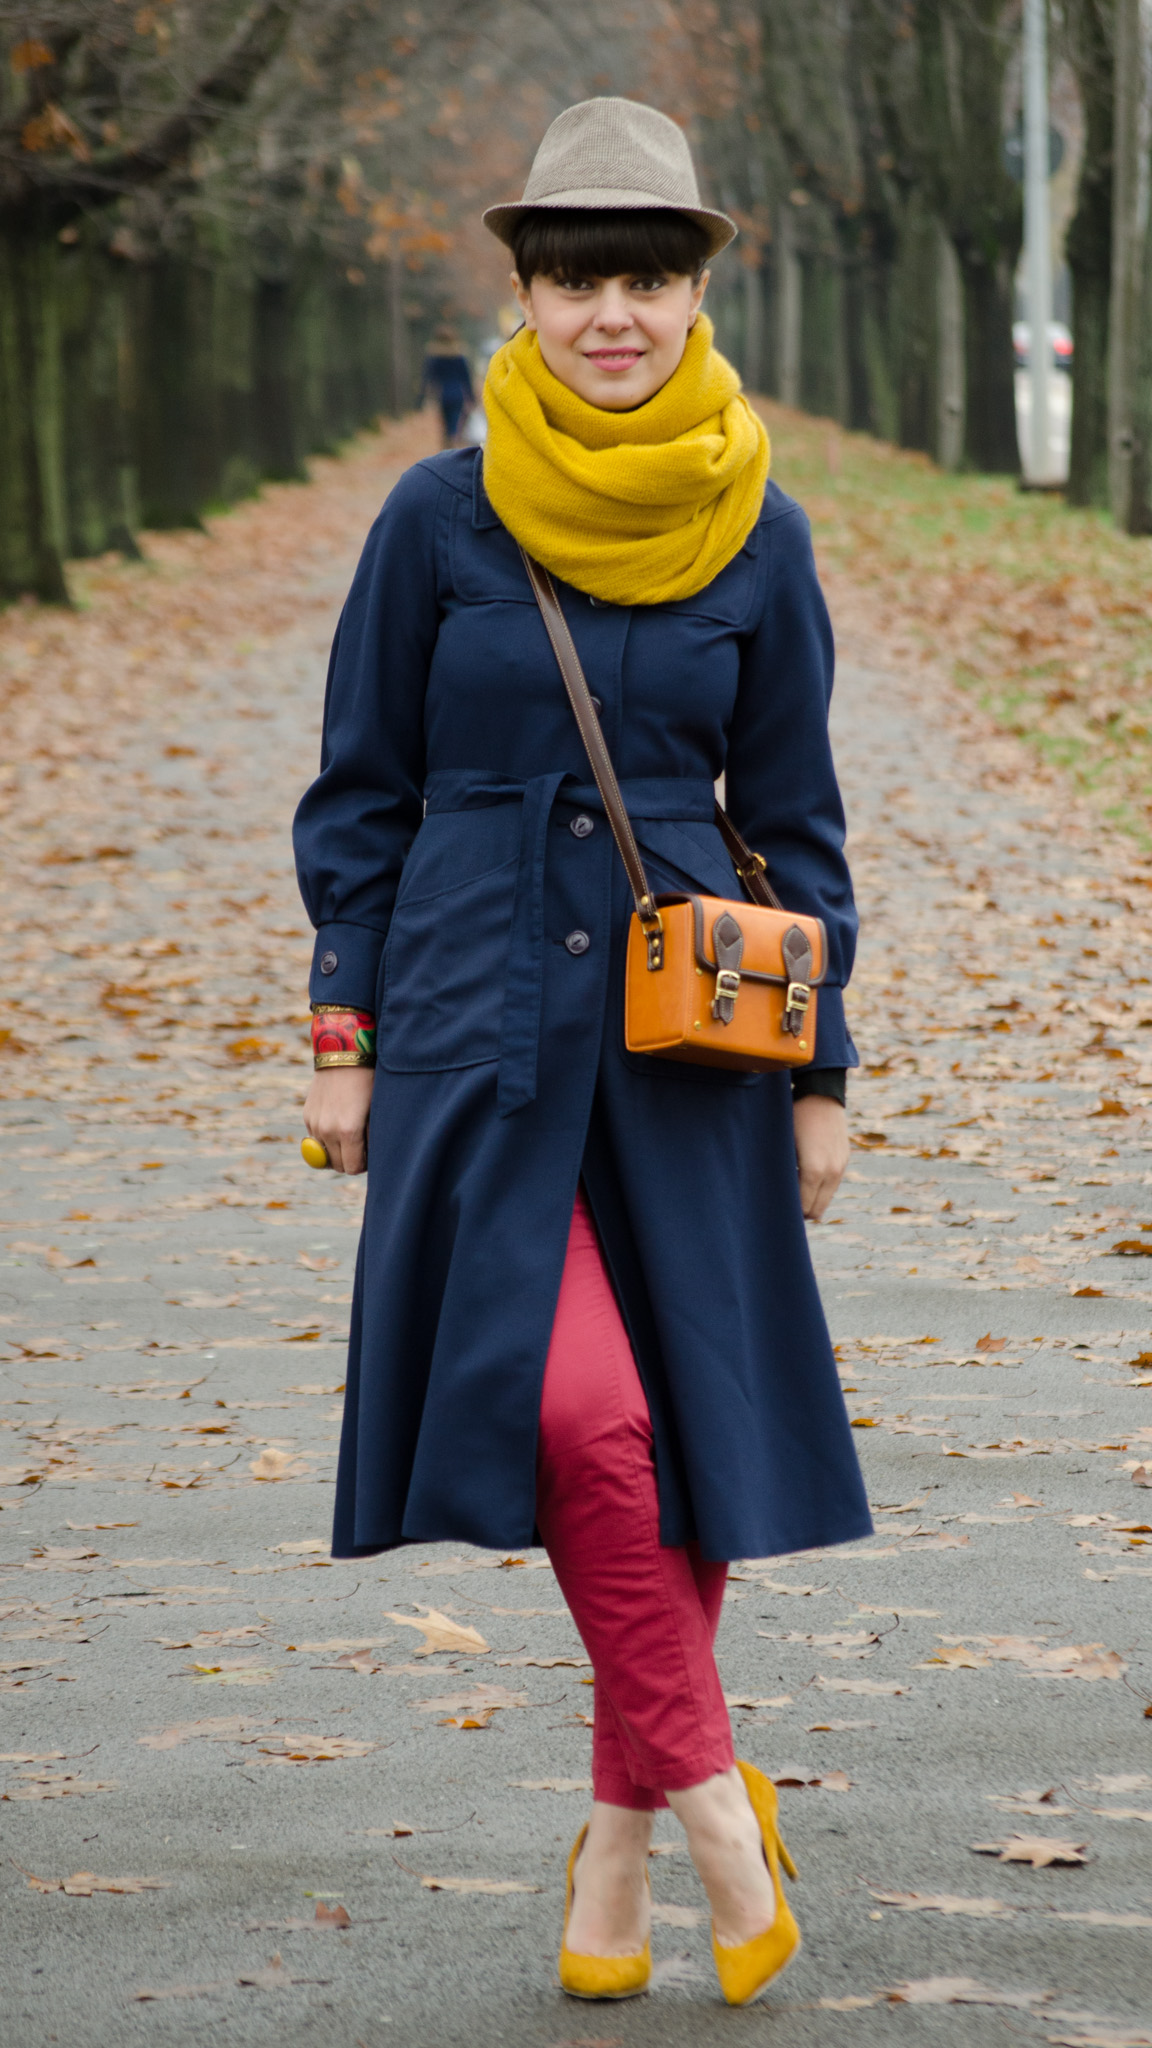 chic navy thrifted coat trench fedora hat h&m burgundy ankle cut pants mustard peoma shoes heels over sized scarf box bag satchel black turtleneck autumn fall bangs